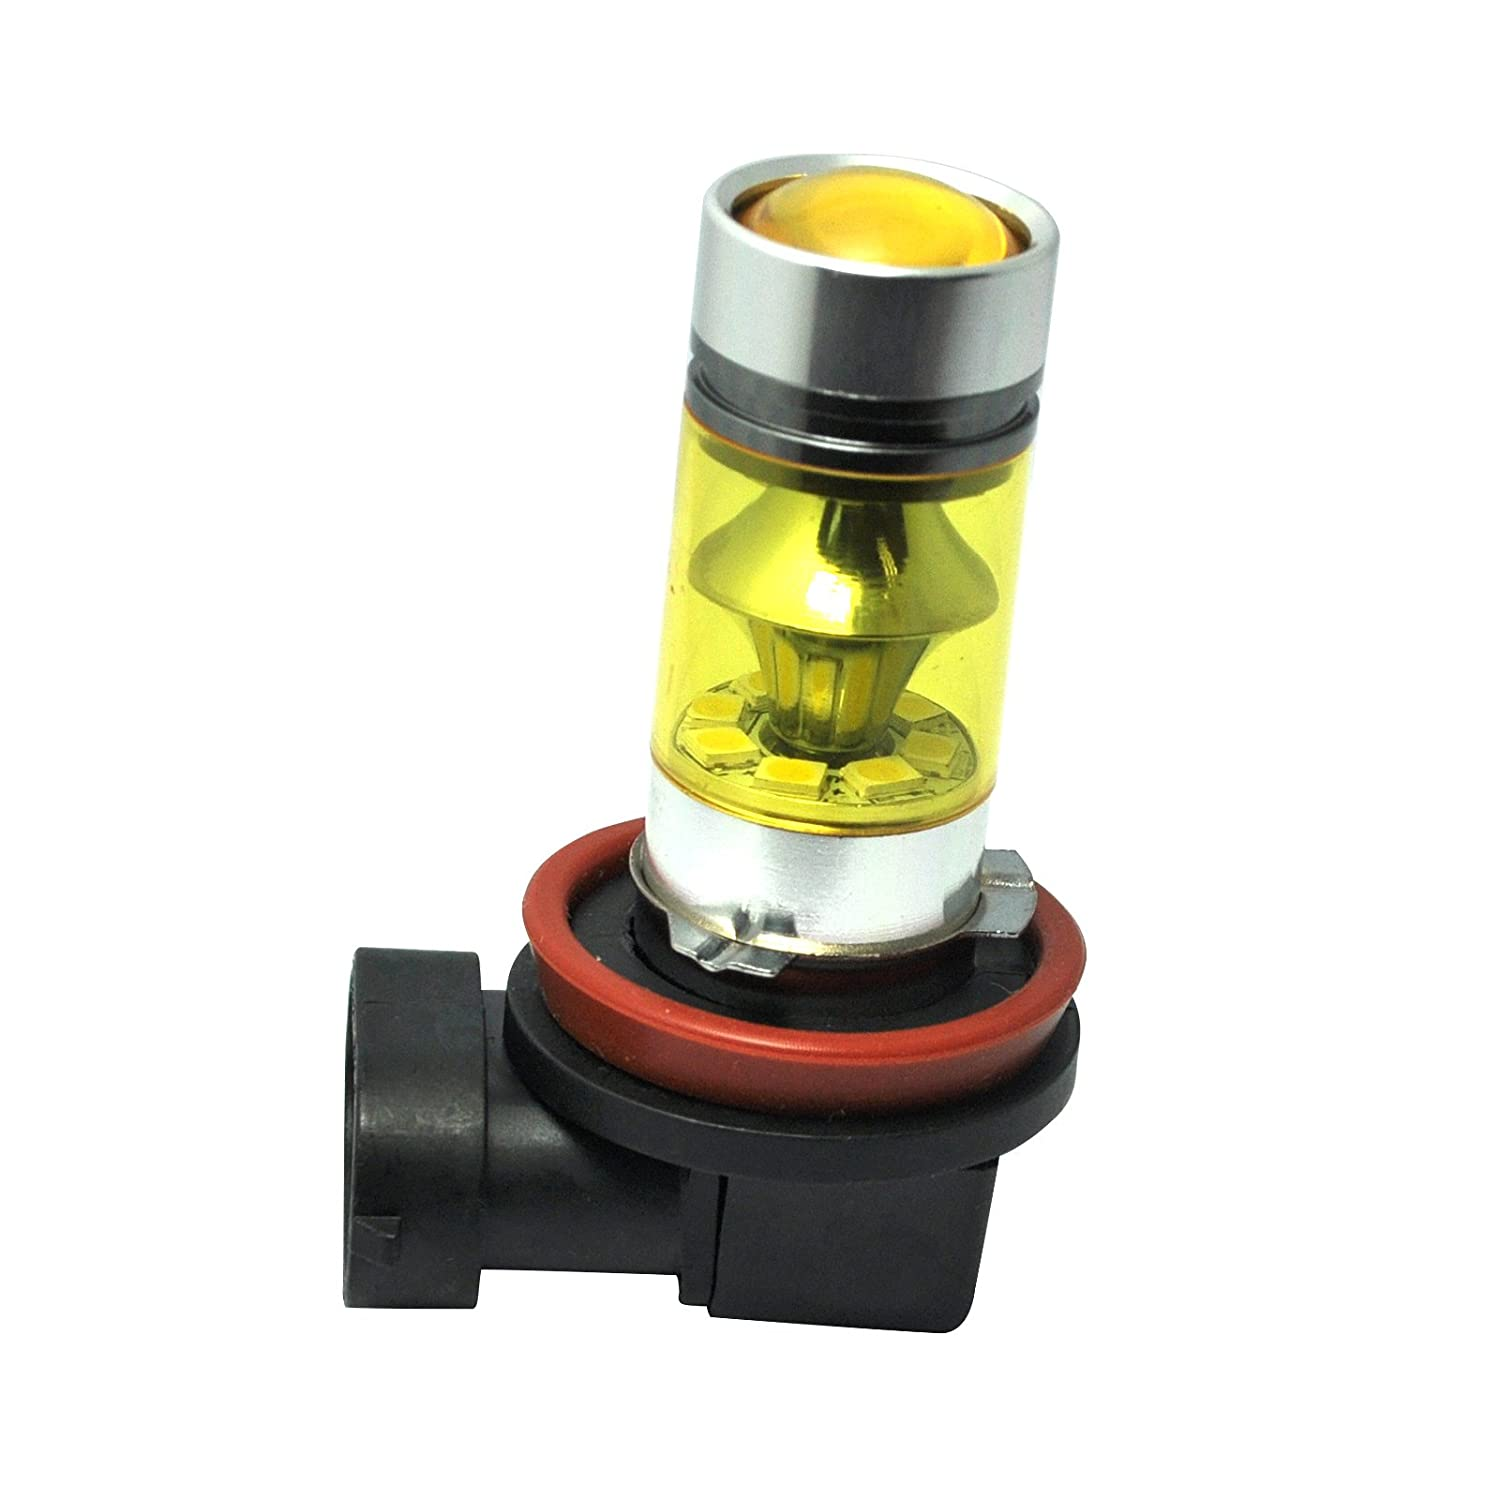 bulb light cree official ziste details media of fog bulbs imagealternatetextformat color led pack yellow product